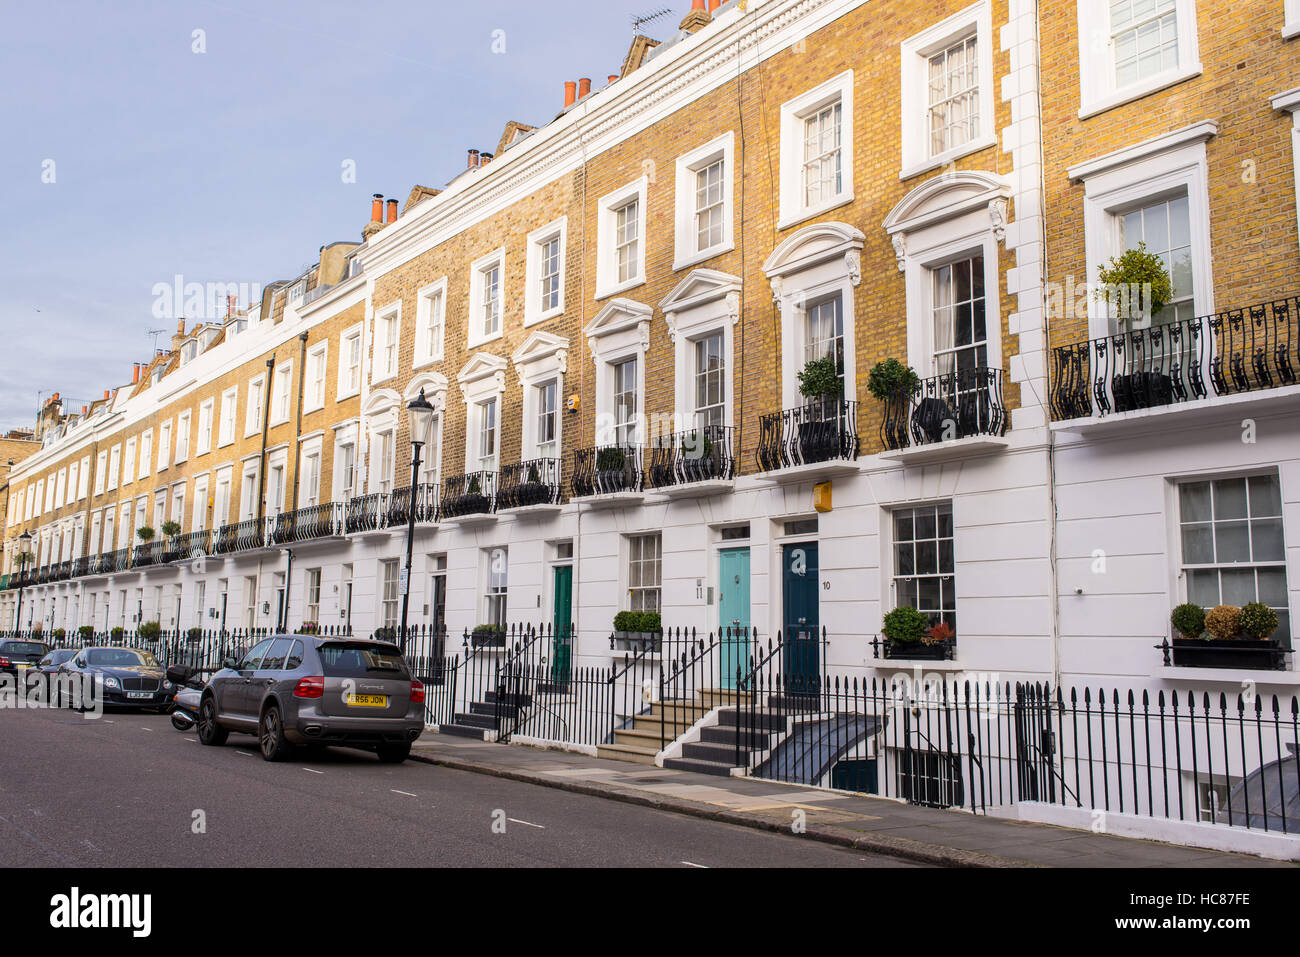 View Of An Elegant Street In The Residential Area Of Chelsea London Stock Photo Alamy